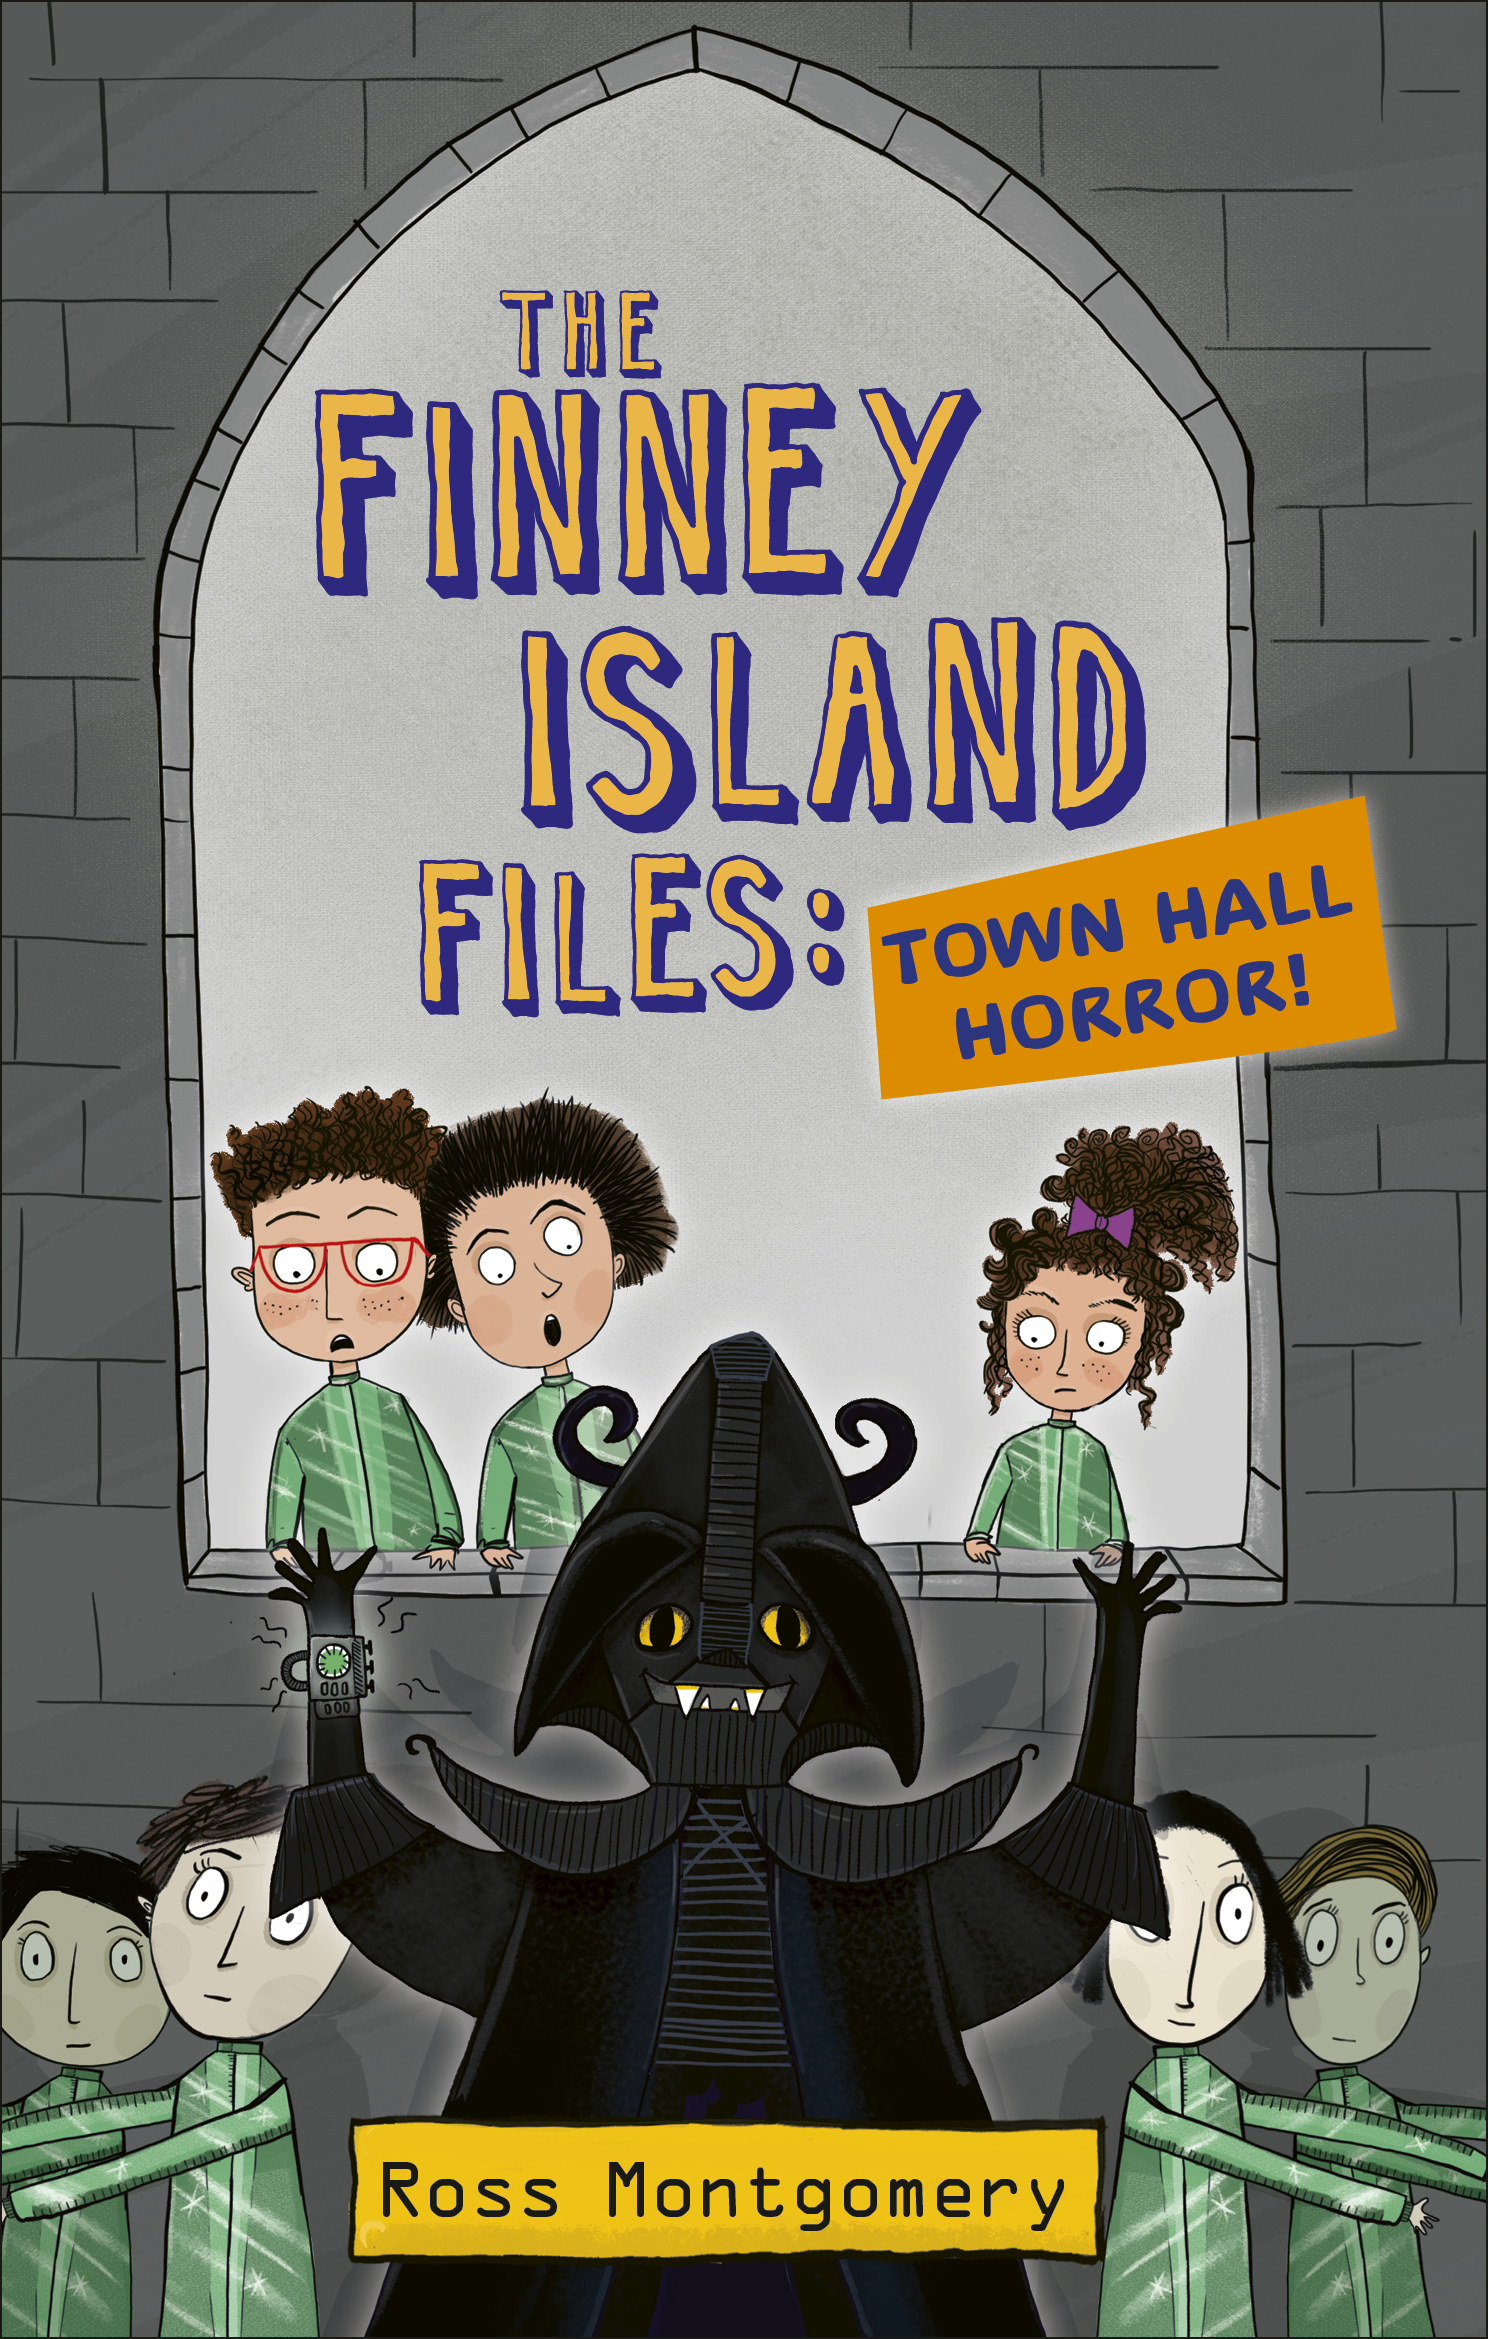 The Finney Island Files 3: Town Hall Terror!